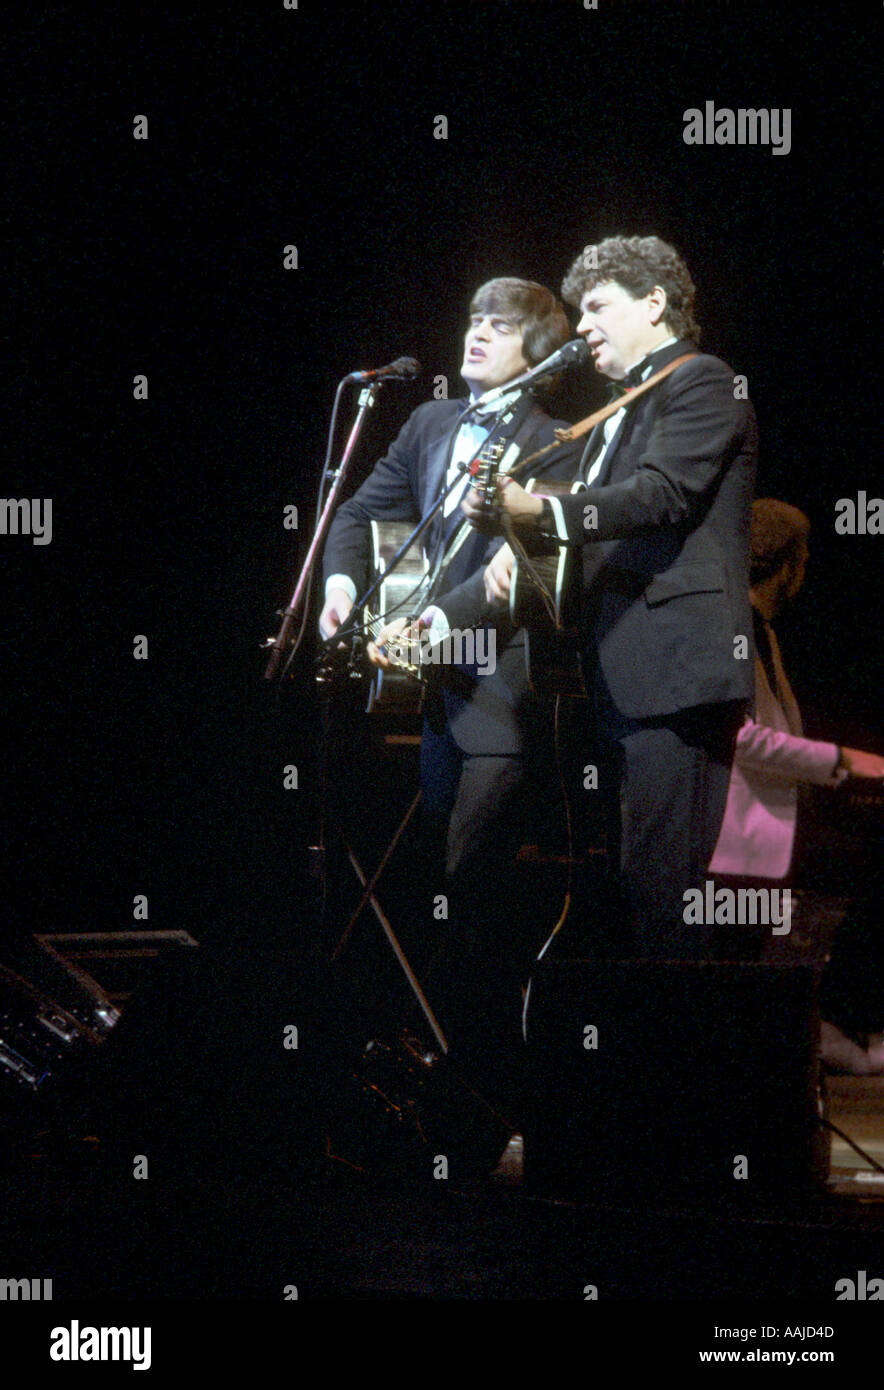 Die Everly Brothers im Konzert in 1985. Stockbild